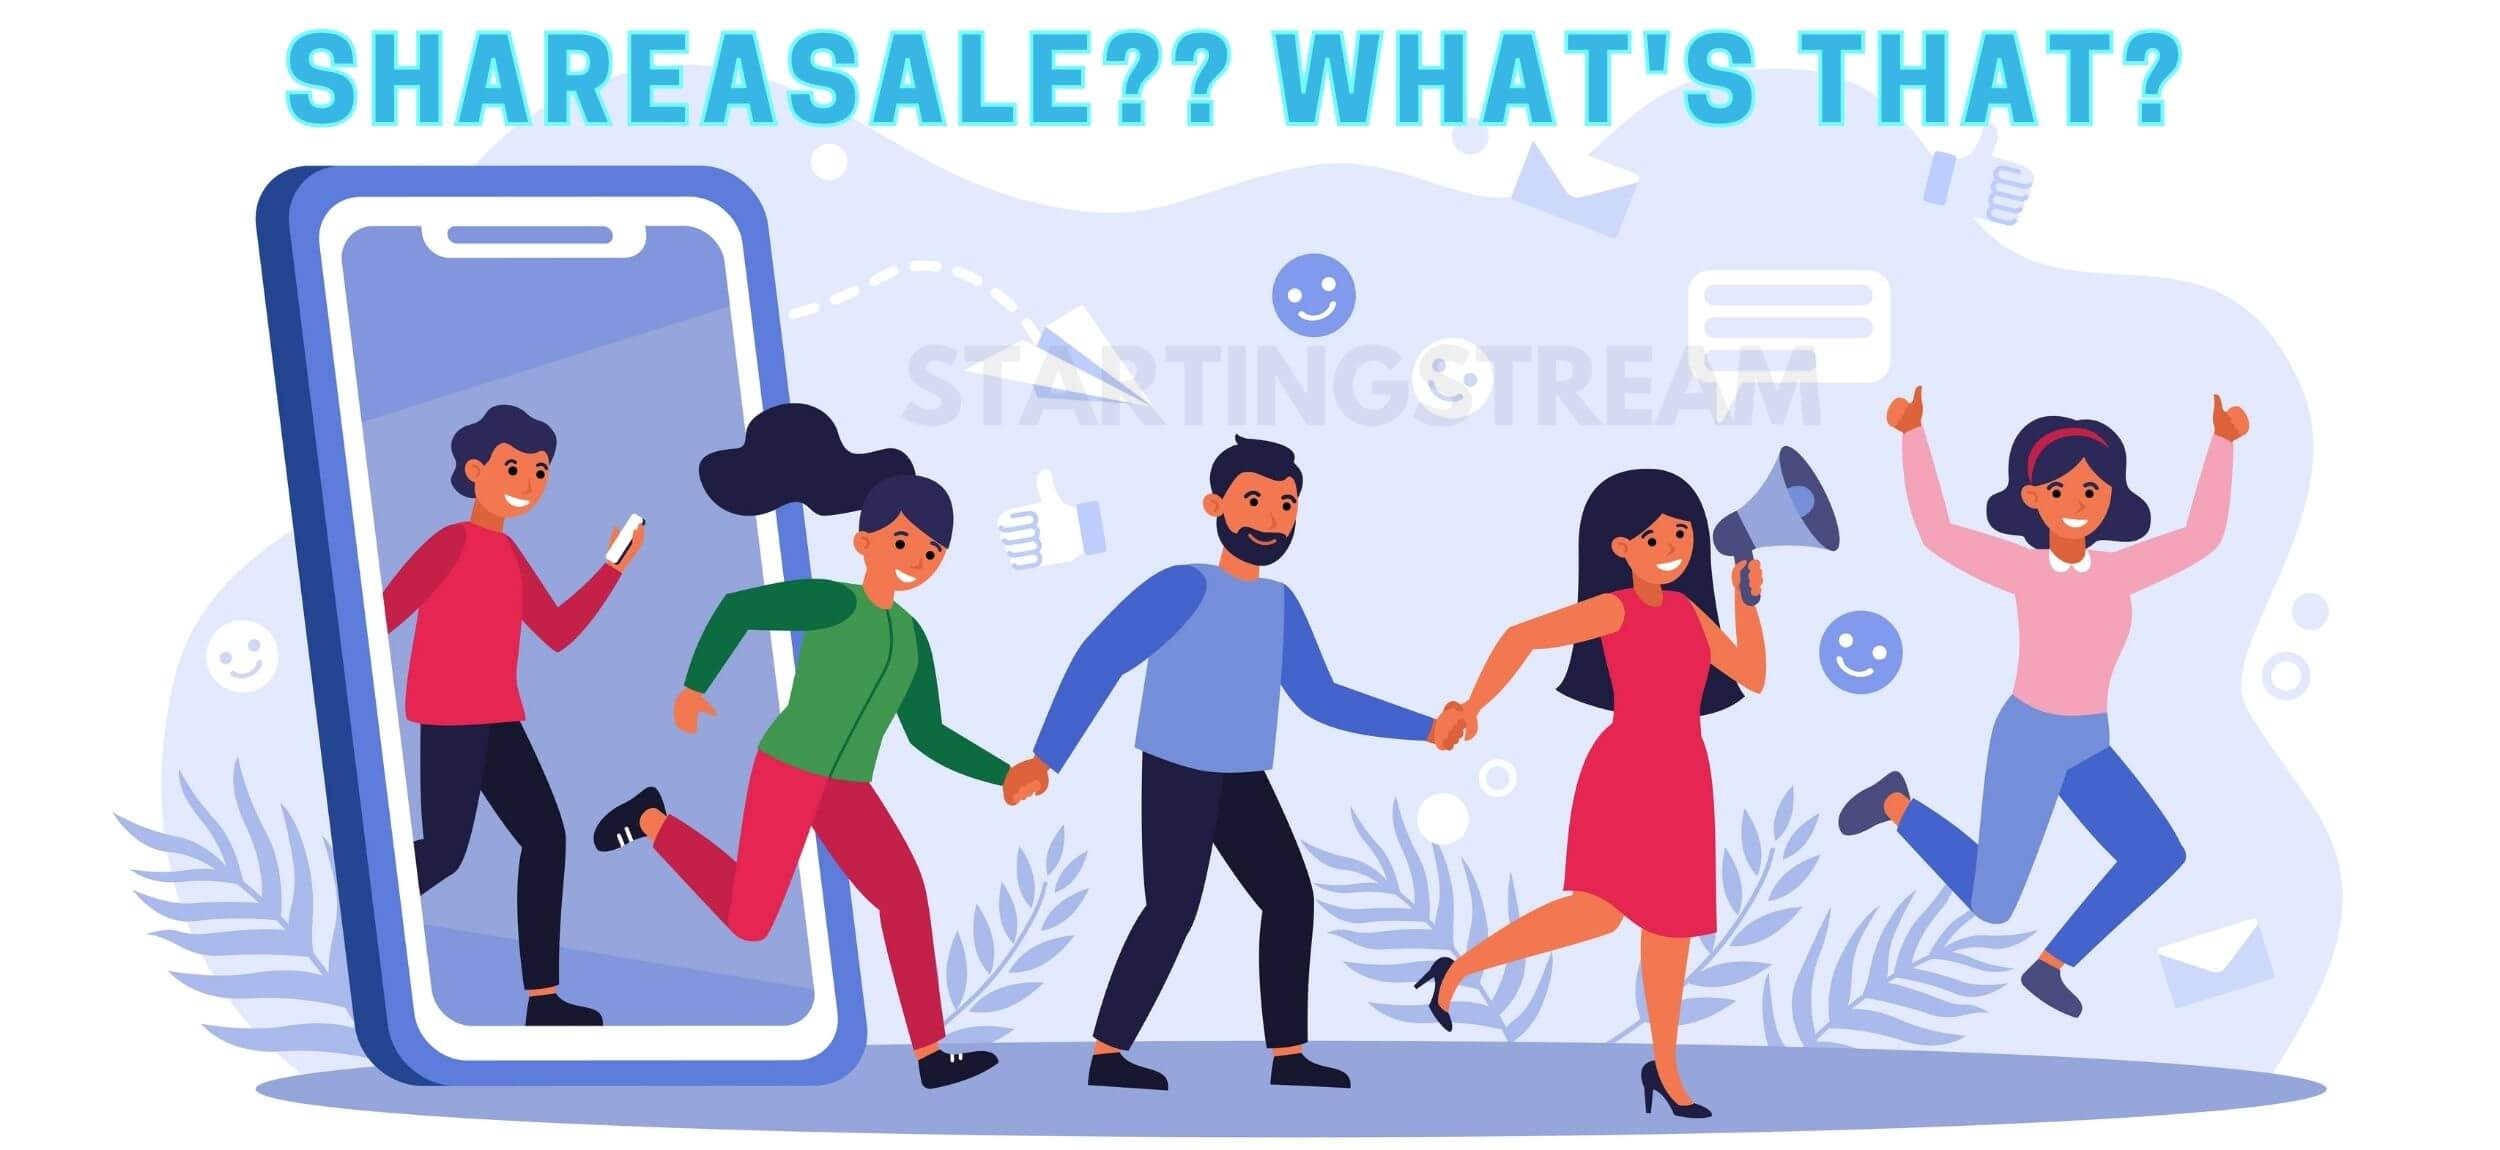 What is Shareasale